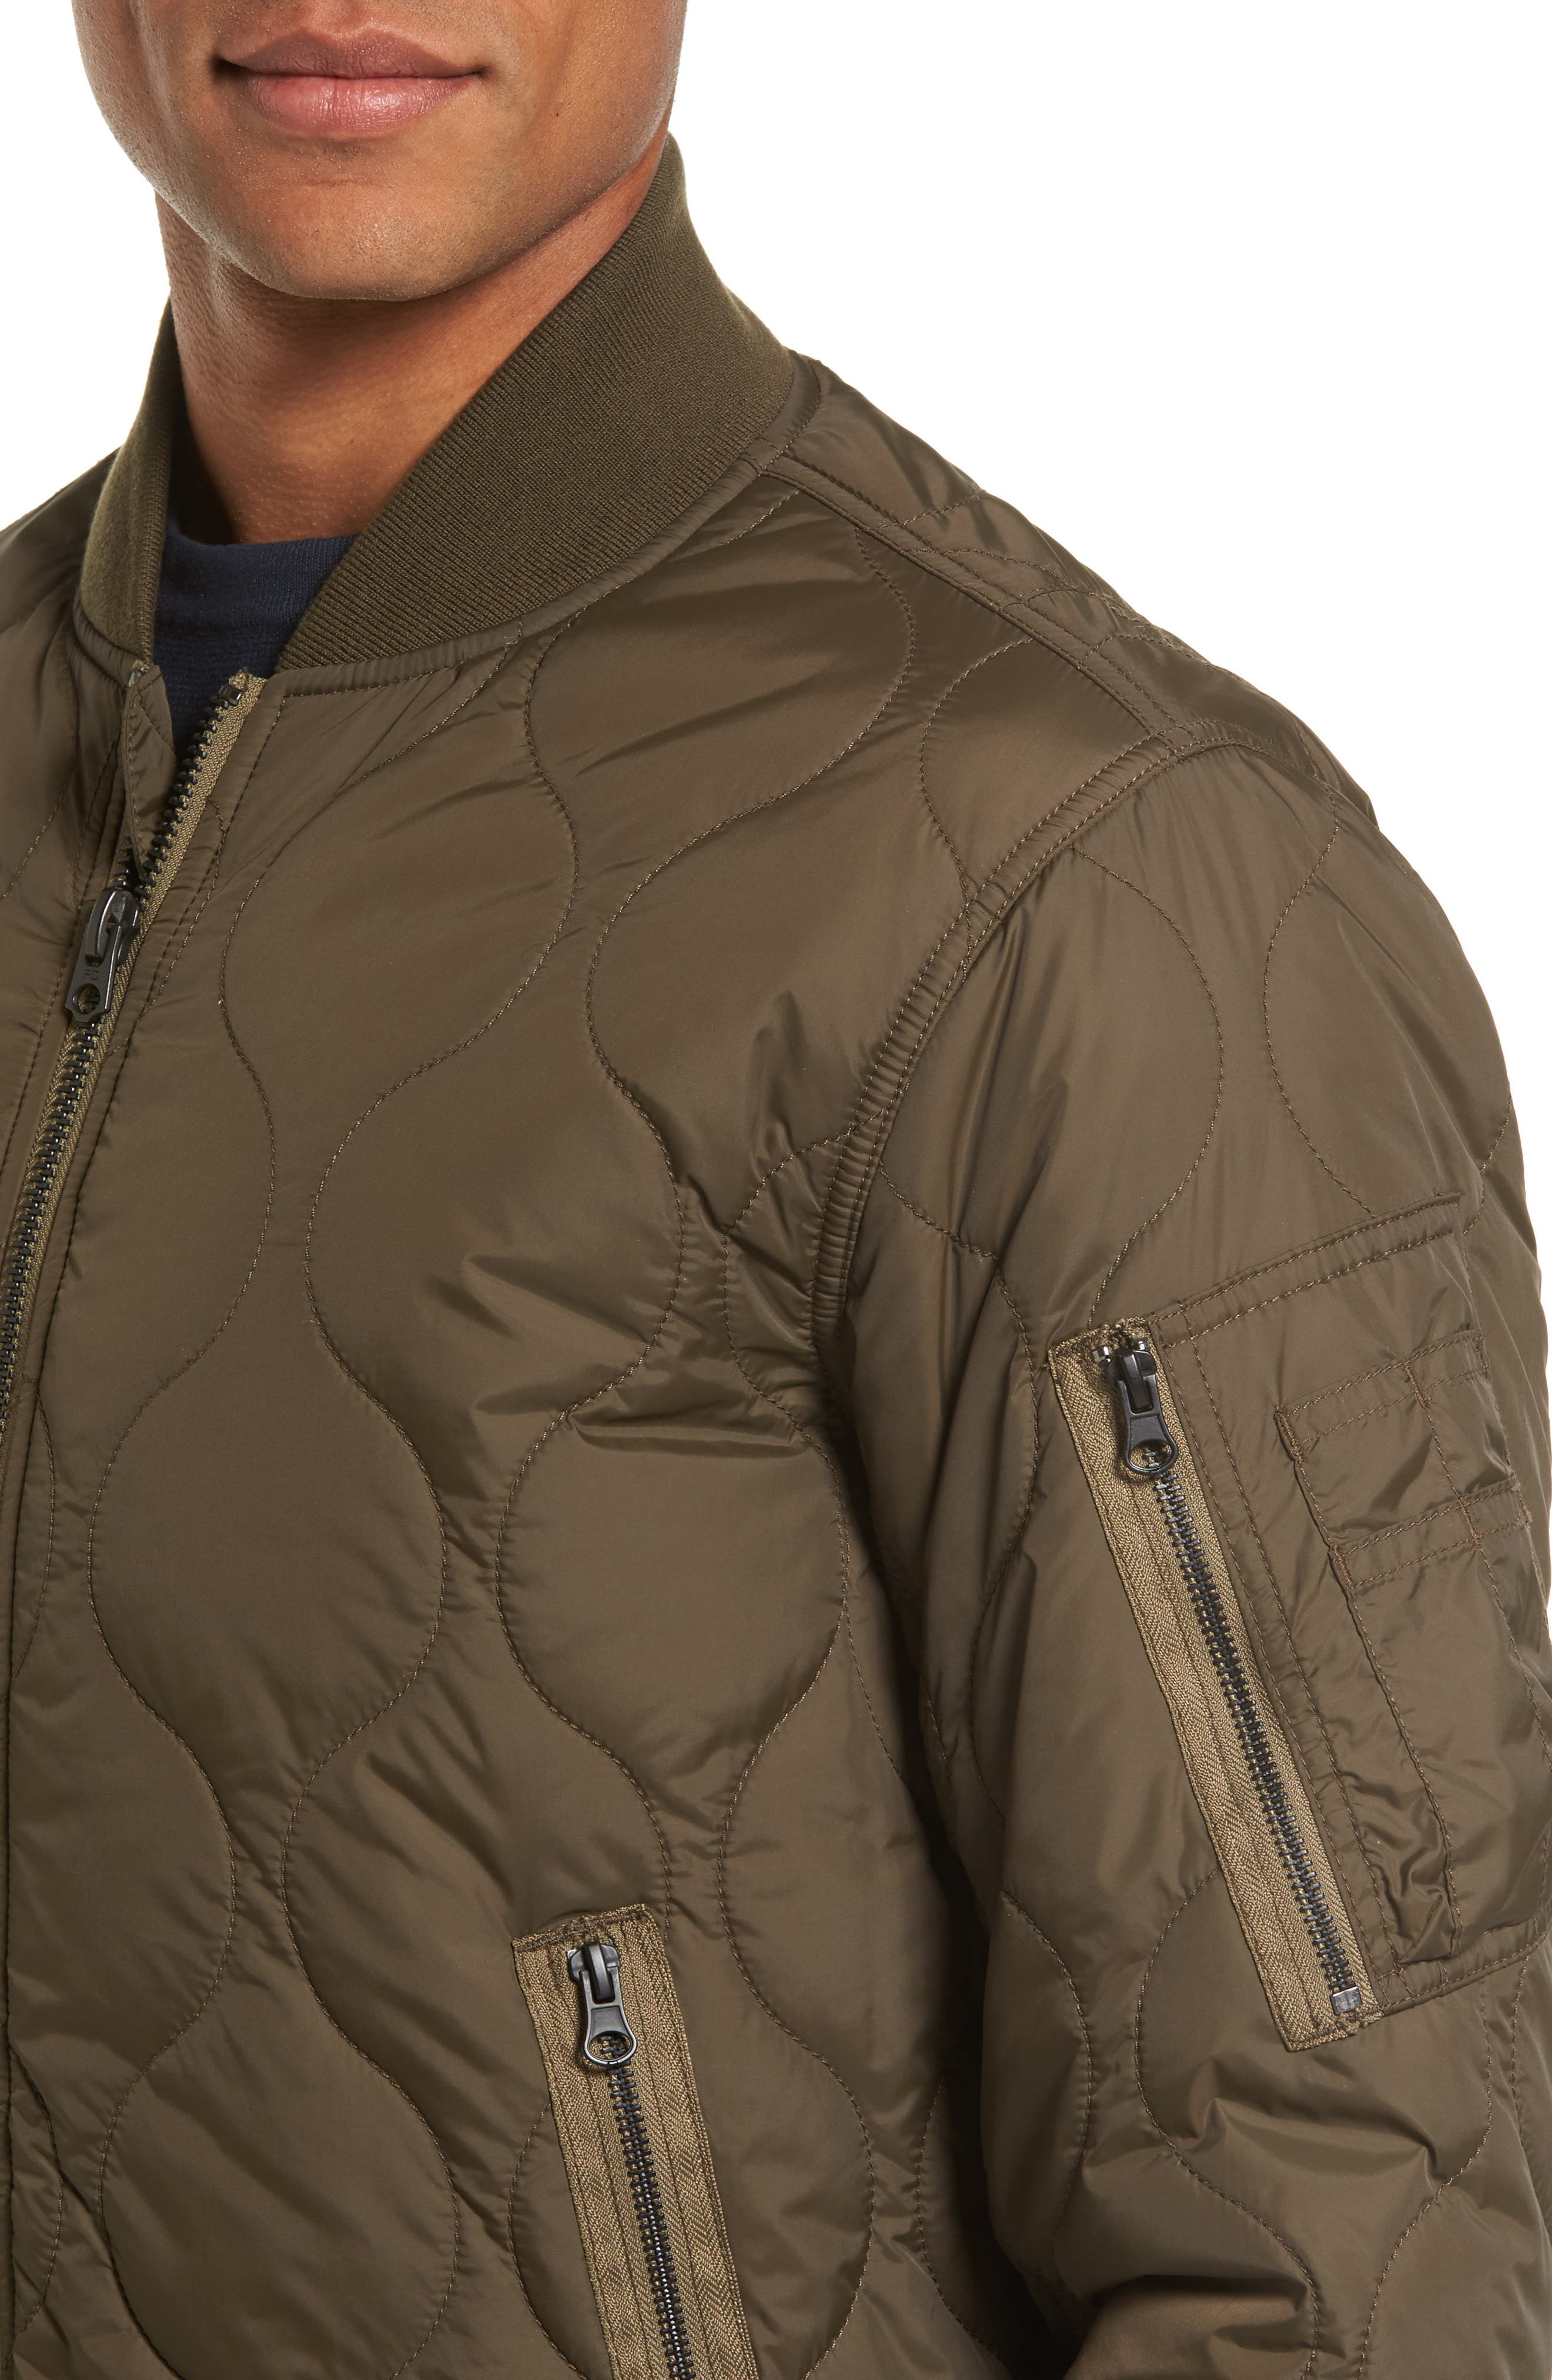 Regular Fit Quilted Bomber Jacket,                             Alternate thumbnail 4, color,